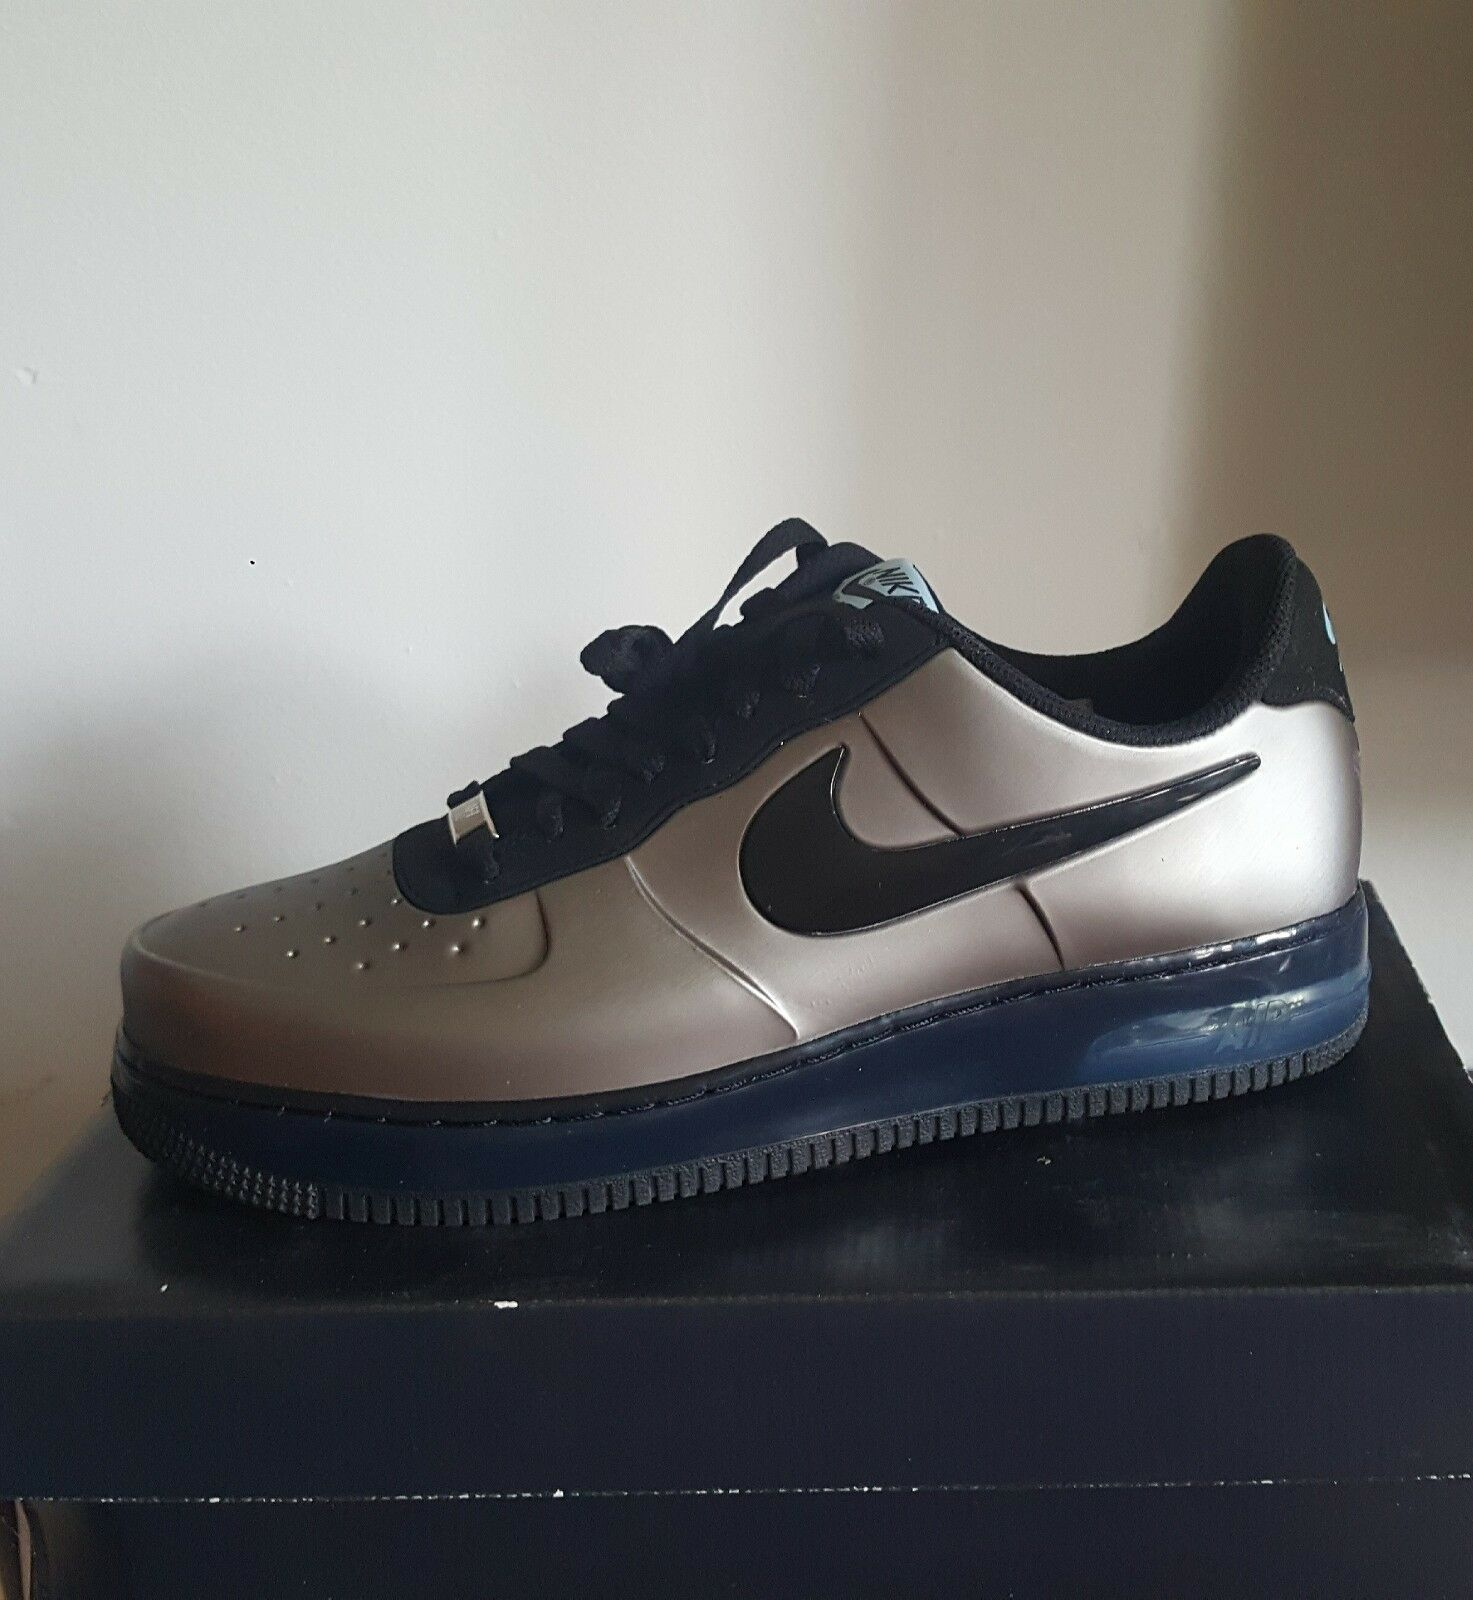 NIKE AIR FORCE 1 FOAMPOSITE PRO LOW / PEWTER / BLACK / EXCLUSIVELY RARE!!!